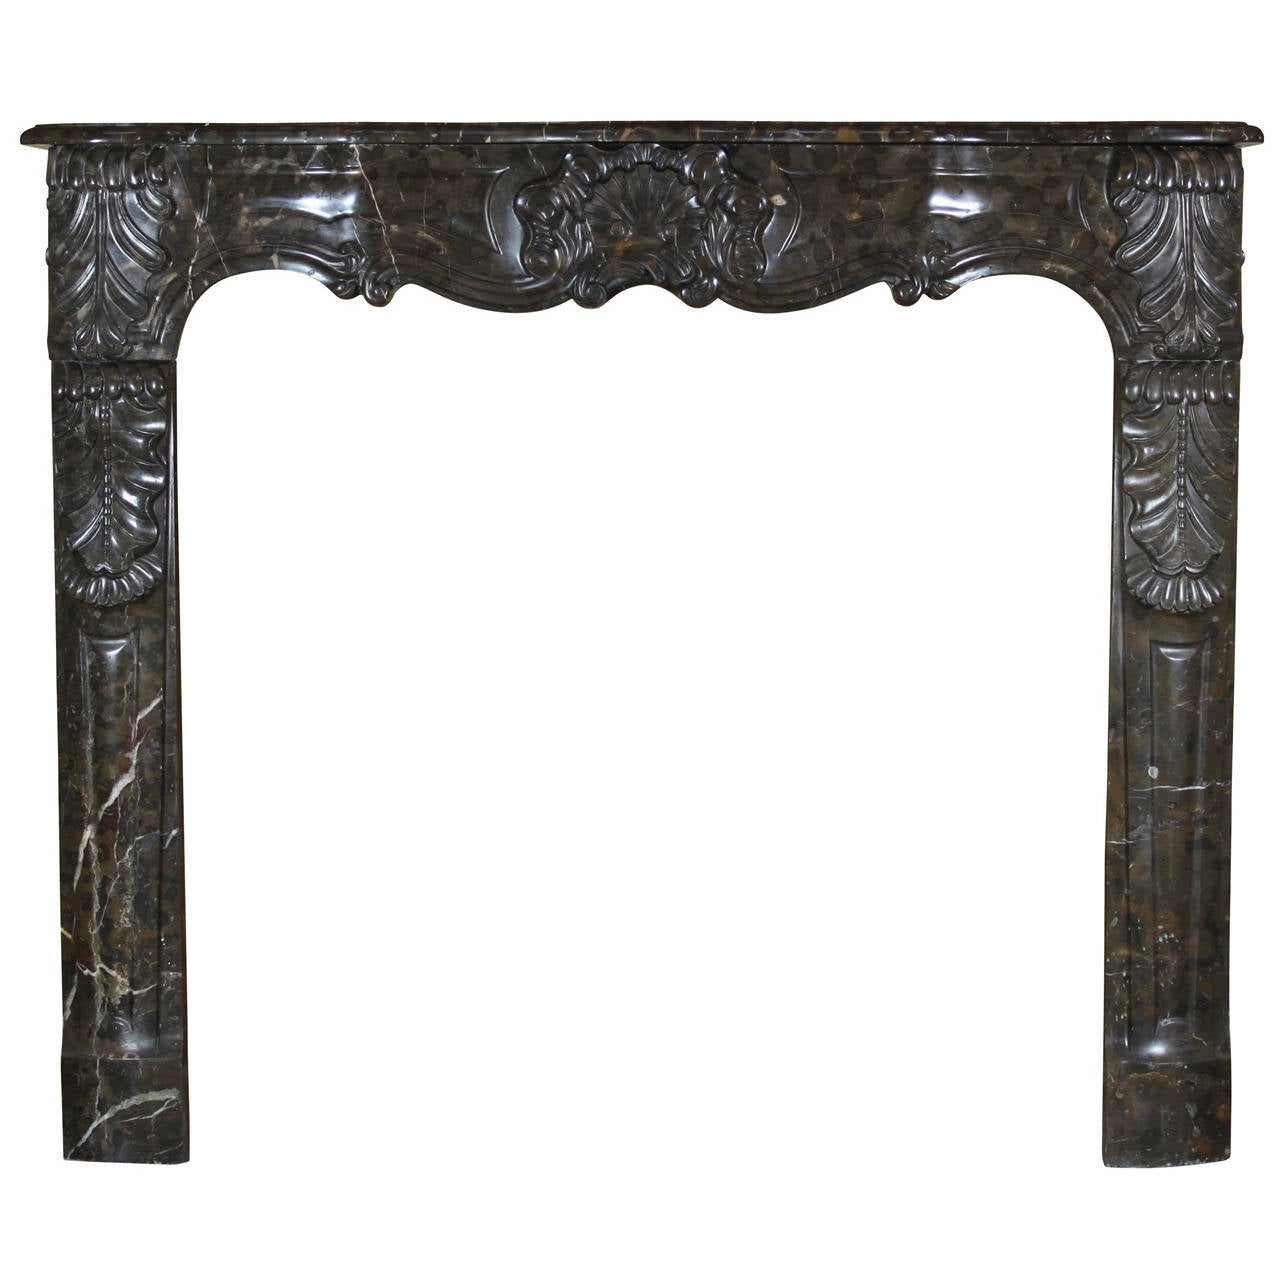 18th C. Marble antique fireplace Mantel from Regency Period, Arbalette Fronton